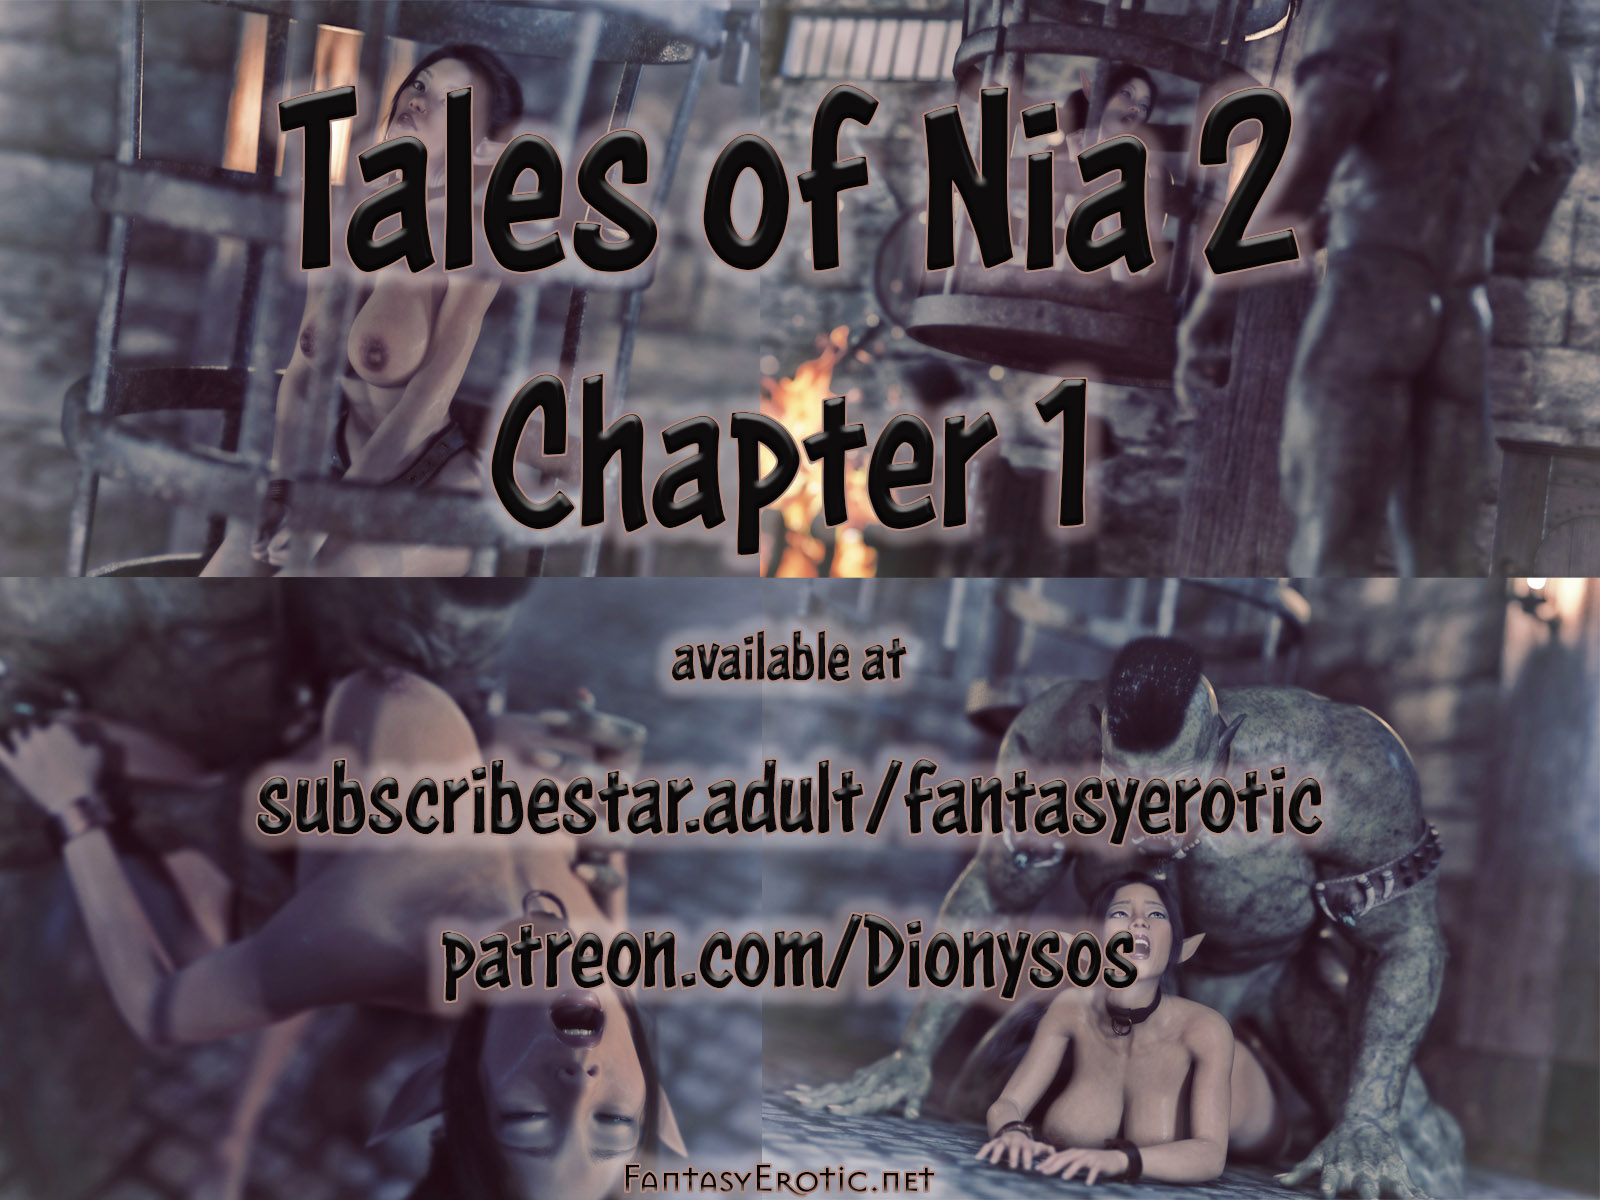 Scenes from the fantasy graphic novel Tales of Nia 2